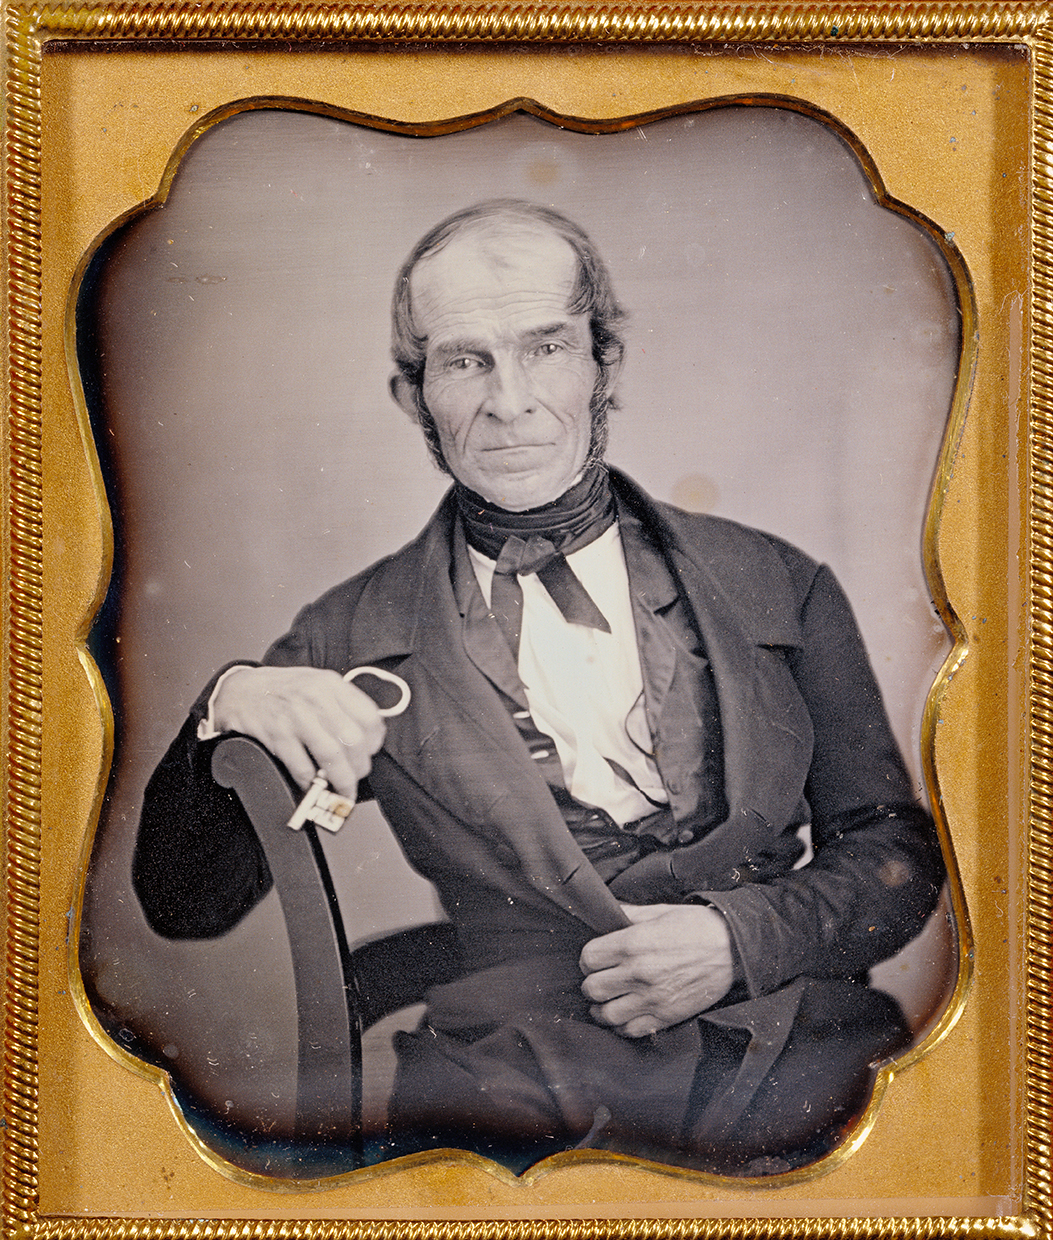 Portraits, Portraits of Men. America. Seated man holding  a key. Daguerreotype, 1844, 7 × 5.7 cm .